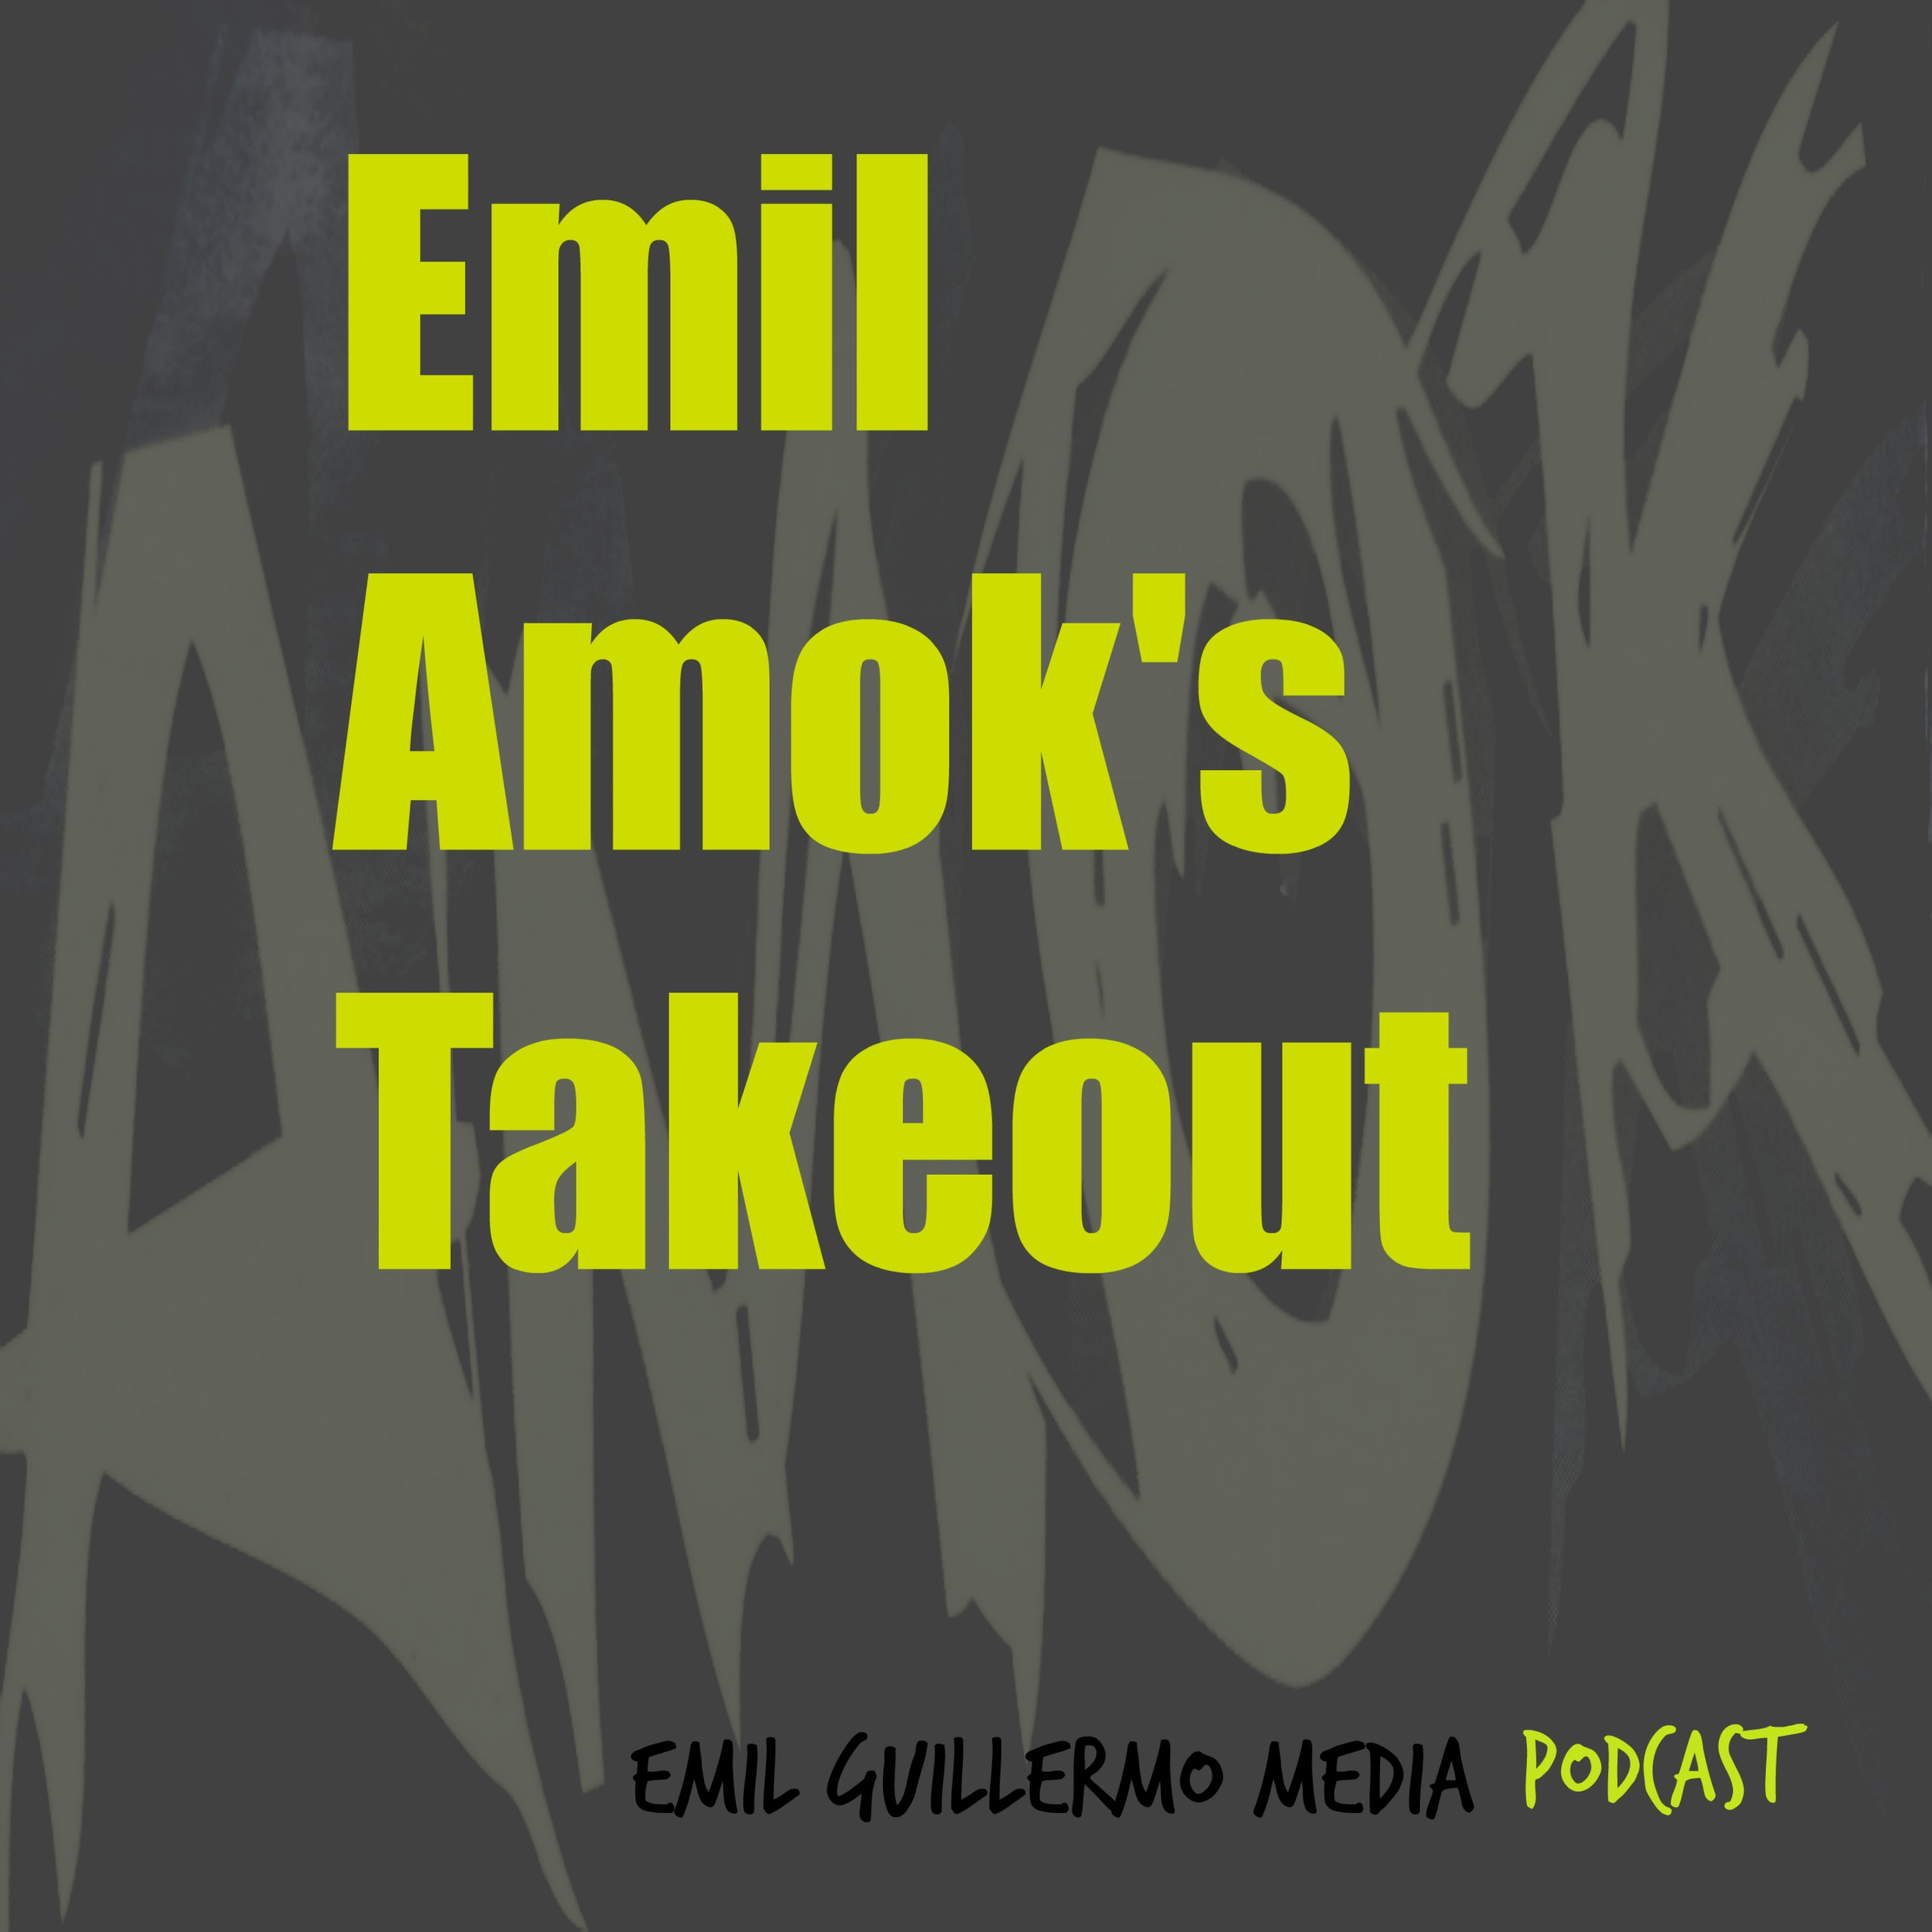 Emil Amok's Takeout from Emil Guillermo Media show art